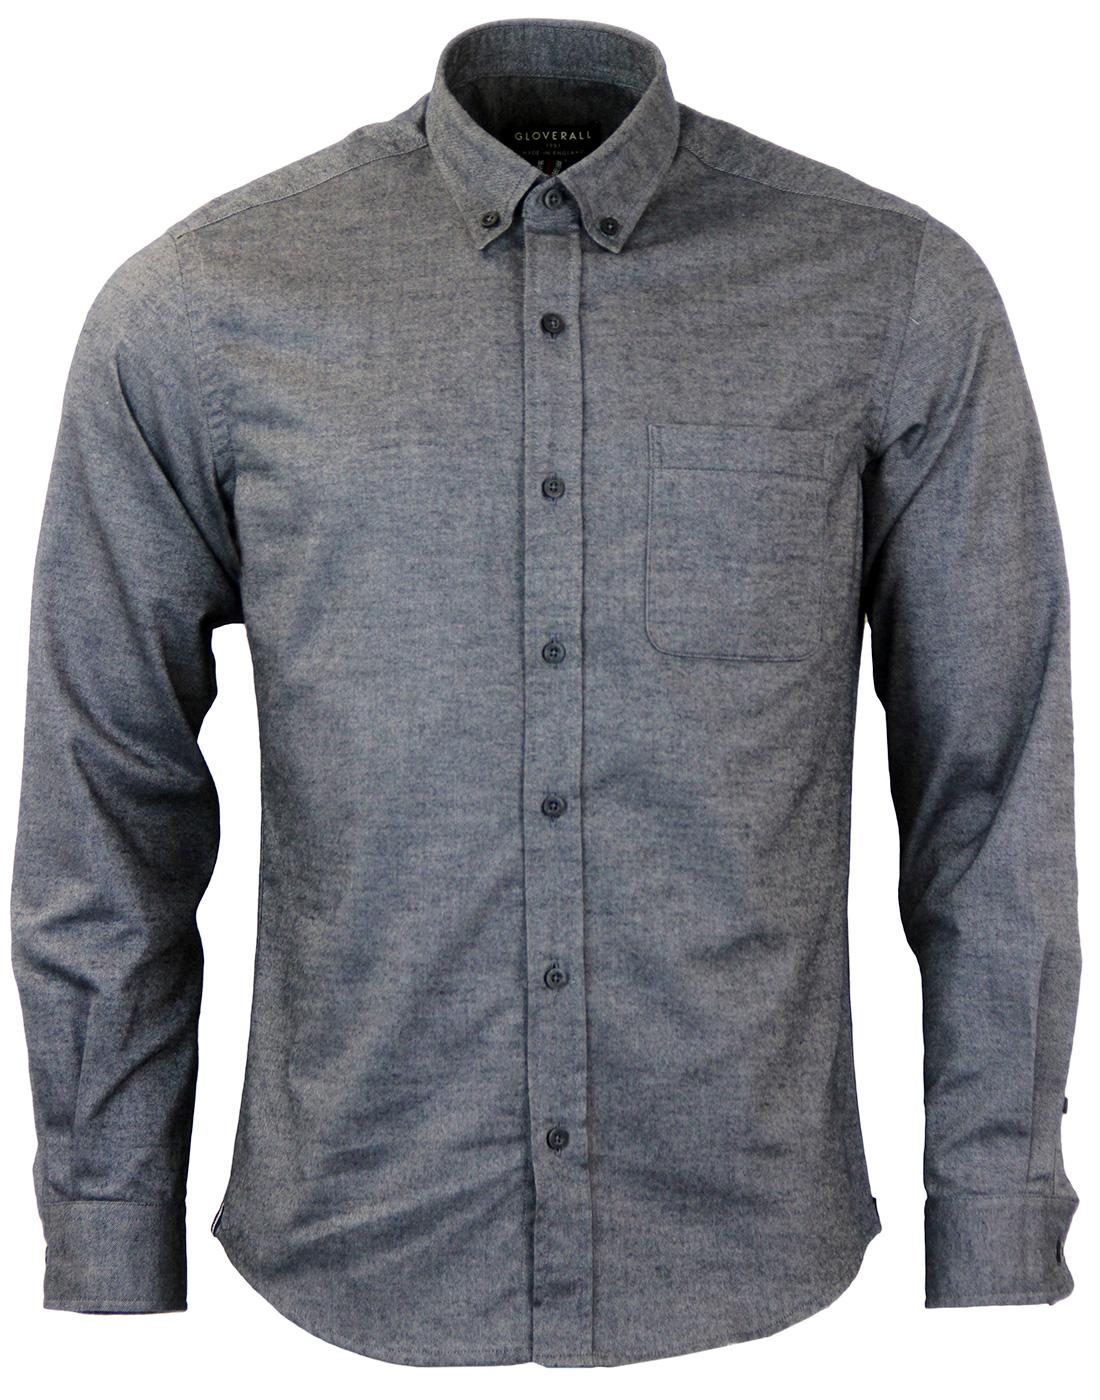 Gloverall Retro Brushed Cotton Twill Oxford Shirt In Blue